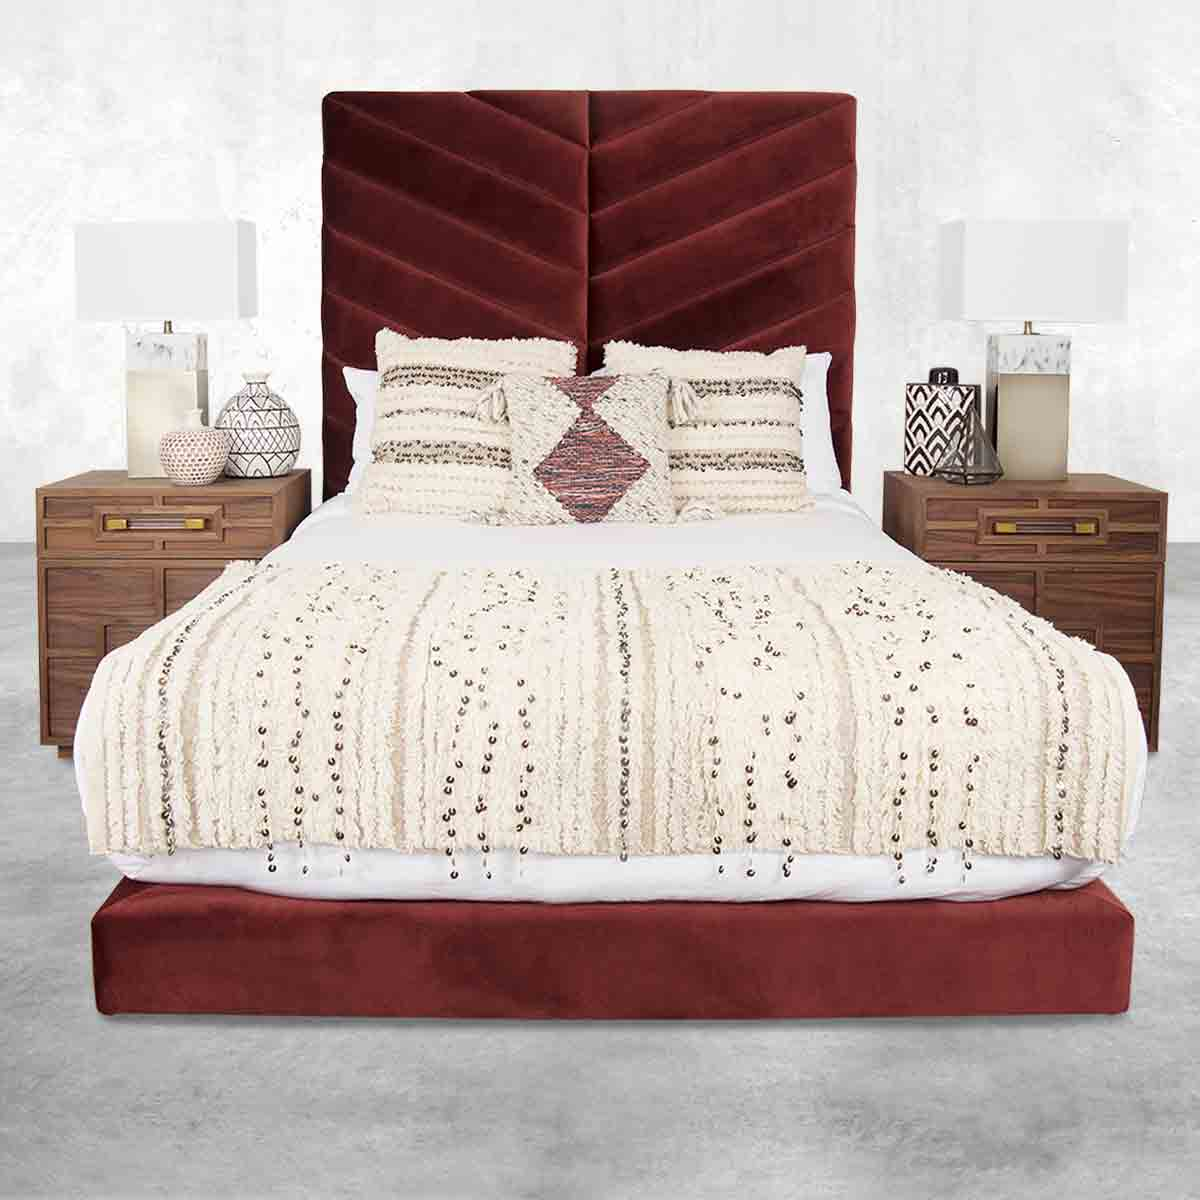 Amalfi Bed in Velvet